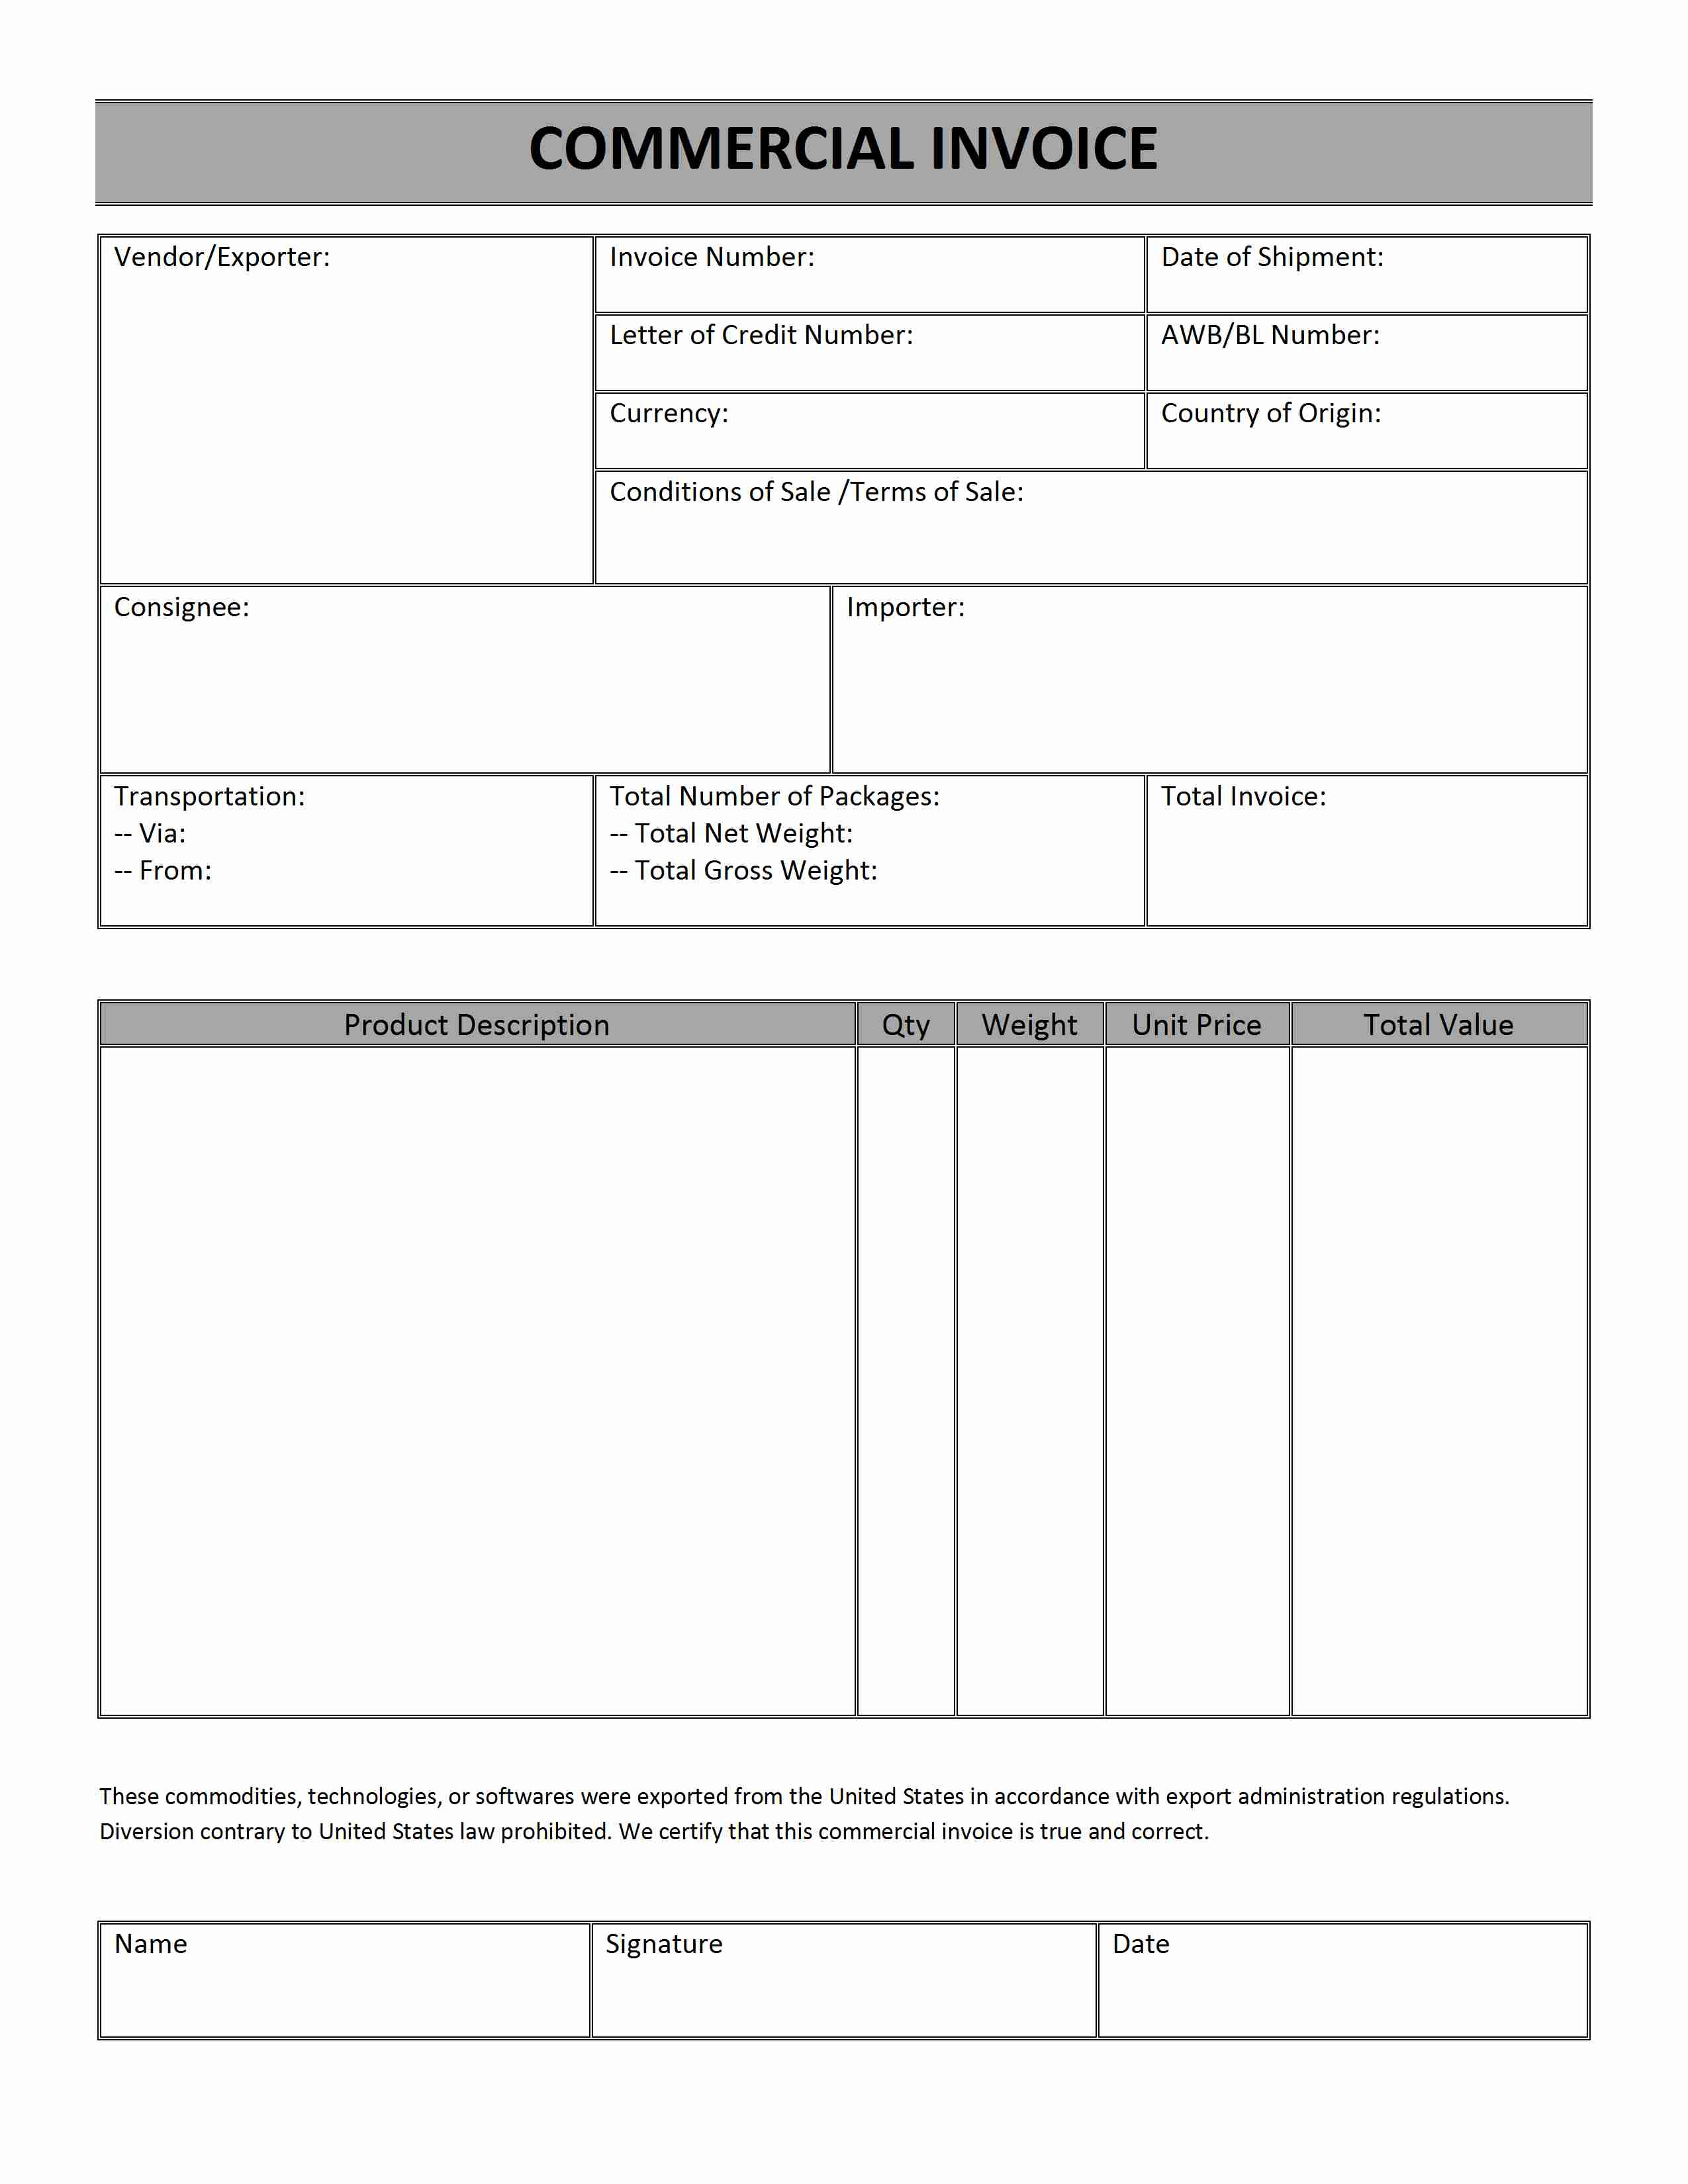 Darkfaderus  Ravishing Printable Sales Invoice Simple Invoice Form Free Invoice  With Engaging Printable Receipt Free  Free Printable Raffle Tickets  Receipt   Printable With Enchanting Web Based Invoice Software Also Legal Invoice Sample In Addition Invoice Templace And Honda Accord Invoice Price  As Well As Free Invoice Template Printable Additionally Painting Invoice Sample From Happytomco With Darkfaderus  Engaging Printable Sales Invoice Simple Invoice Form Free Invoice  With Enchanting Printable Receipt Free  Free Printable Raffle Tickets  Receipt   Printable And Ravishing Web Based Invoice Software Also Legal Invoice Sample In Addition Invoice Templace From Happytomco